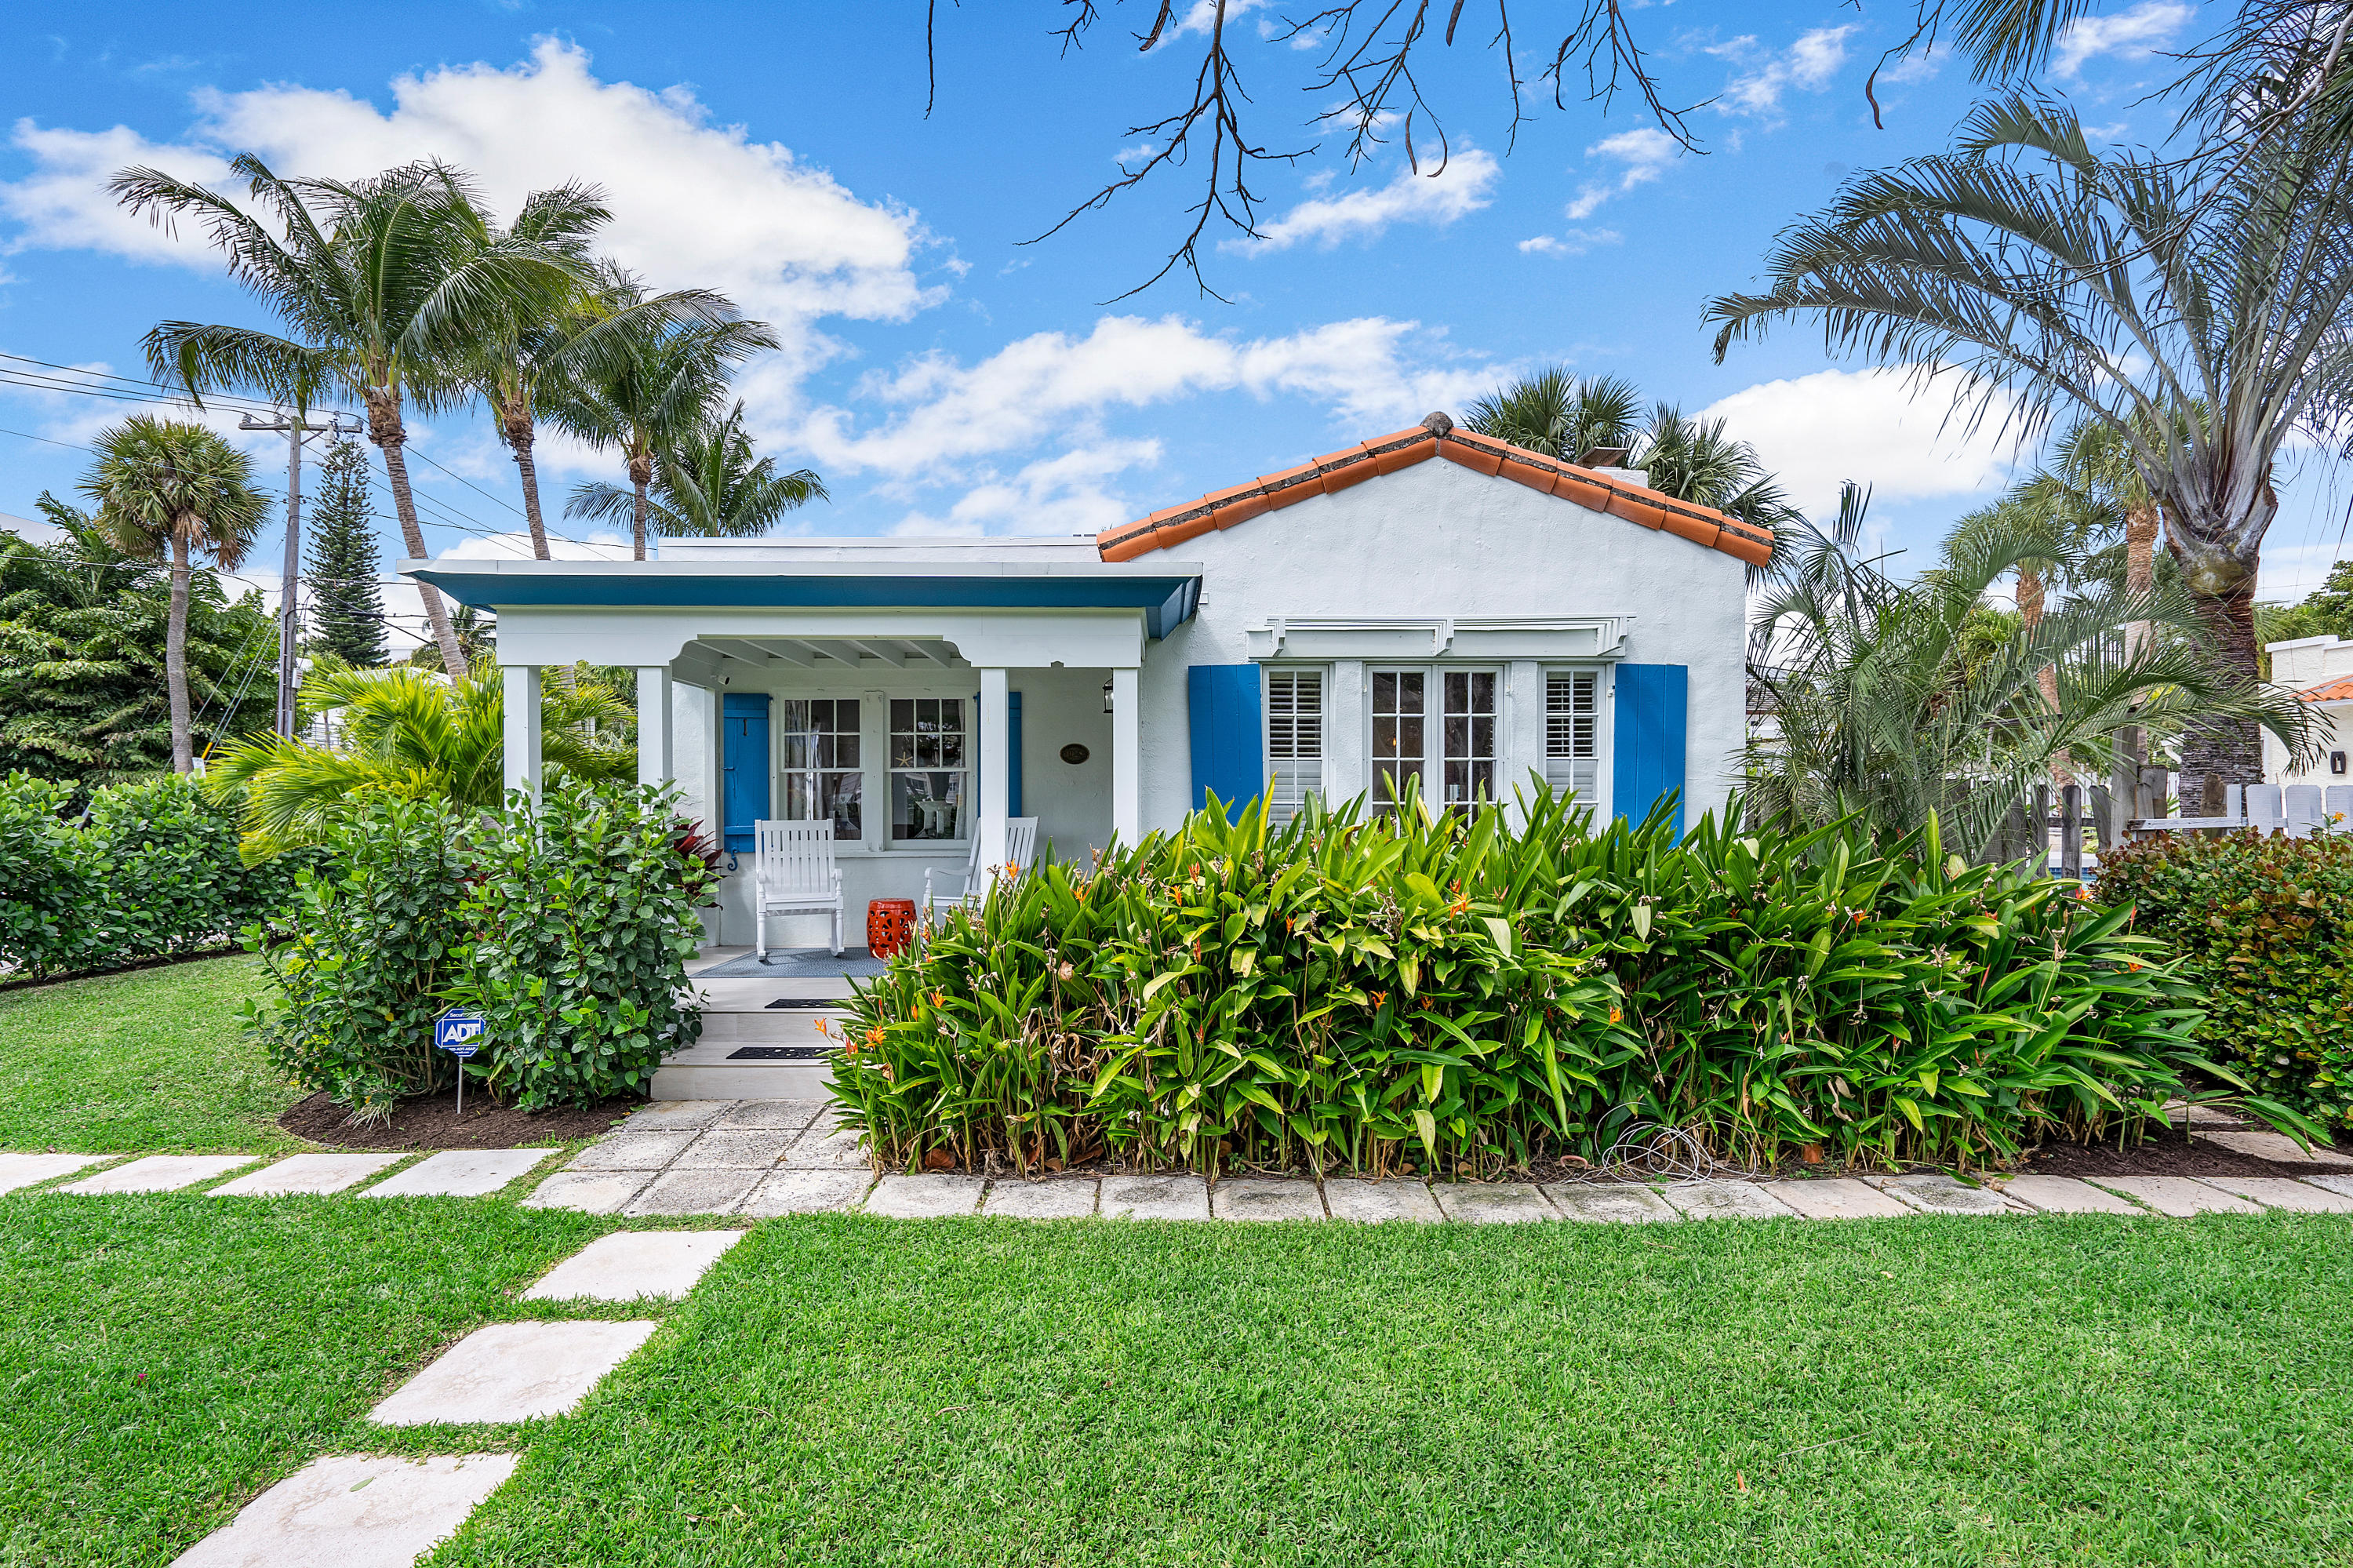 707 1st Street, Delray Beach, Florida 33483, 3 Bedrooms Bedrooms, ,2 BathroomsBathrooms,Single Family Detached,For Sale,1st,RX-10699012